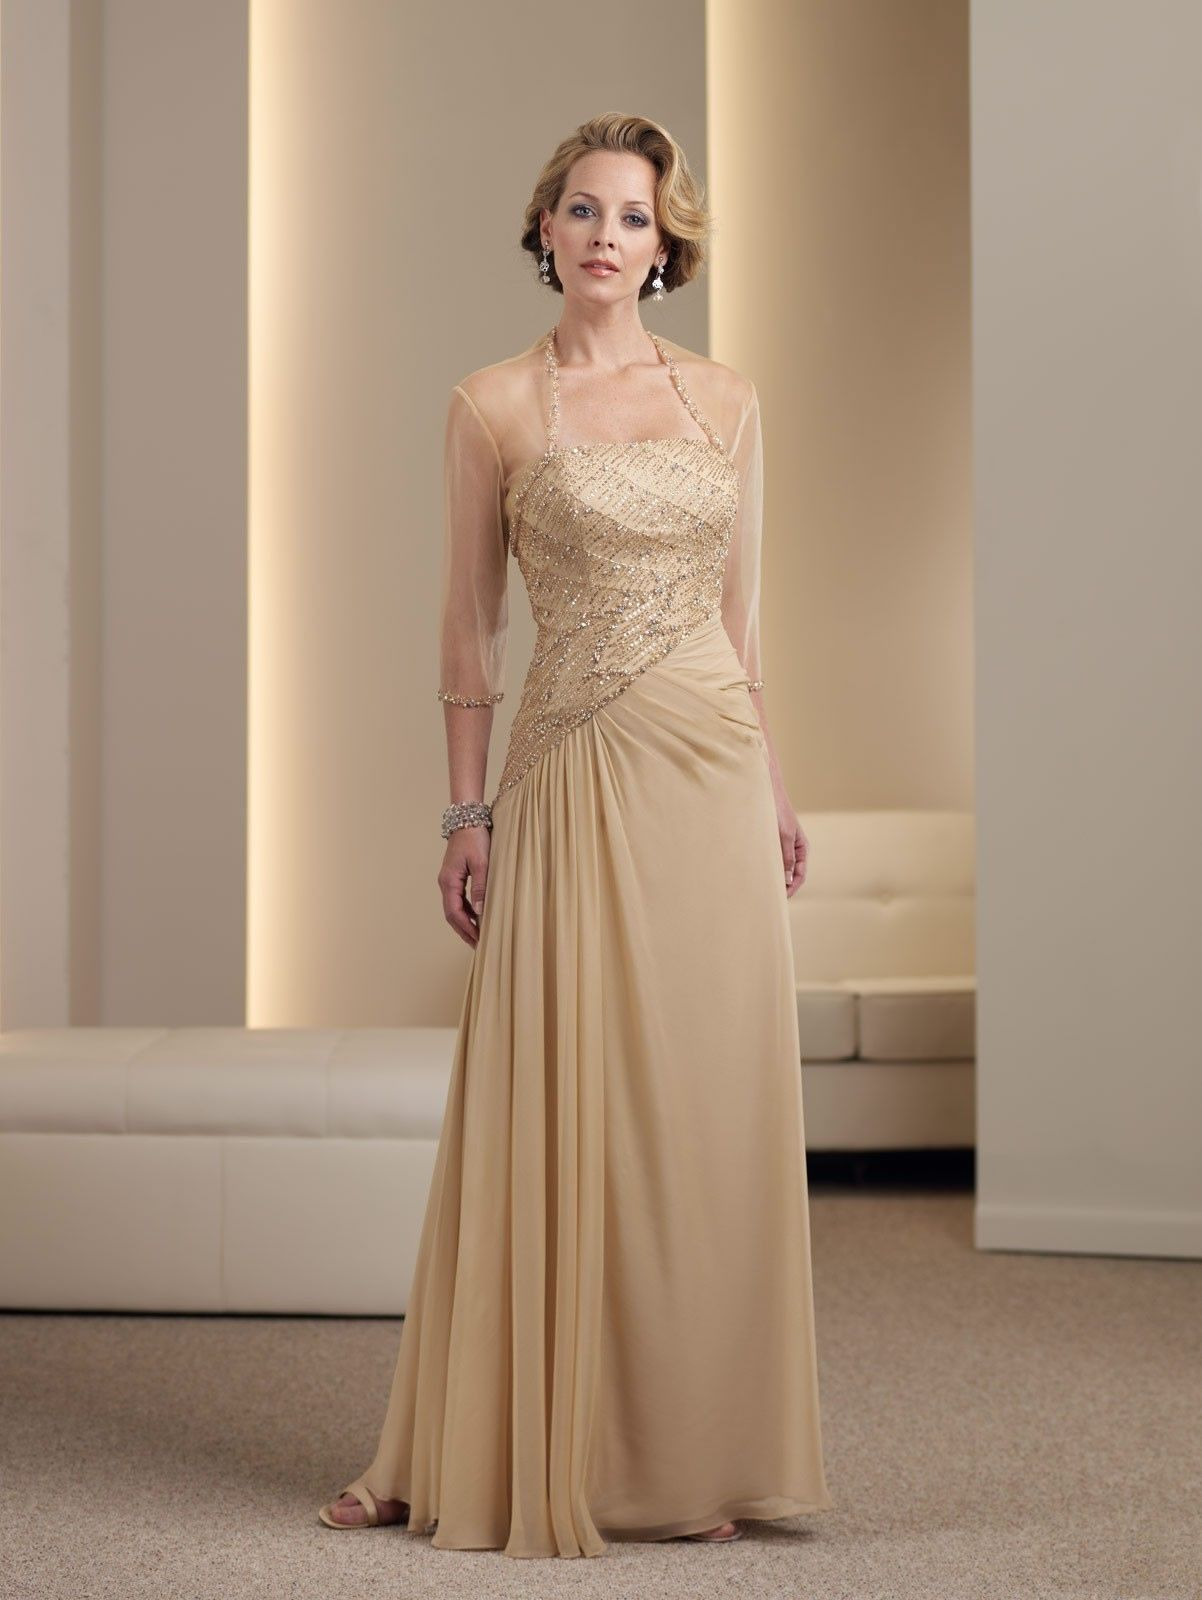 Wedding dresses for mother of the bride  Inspirational Wedding Dresses for Mothers Check more at